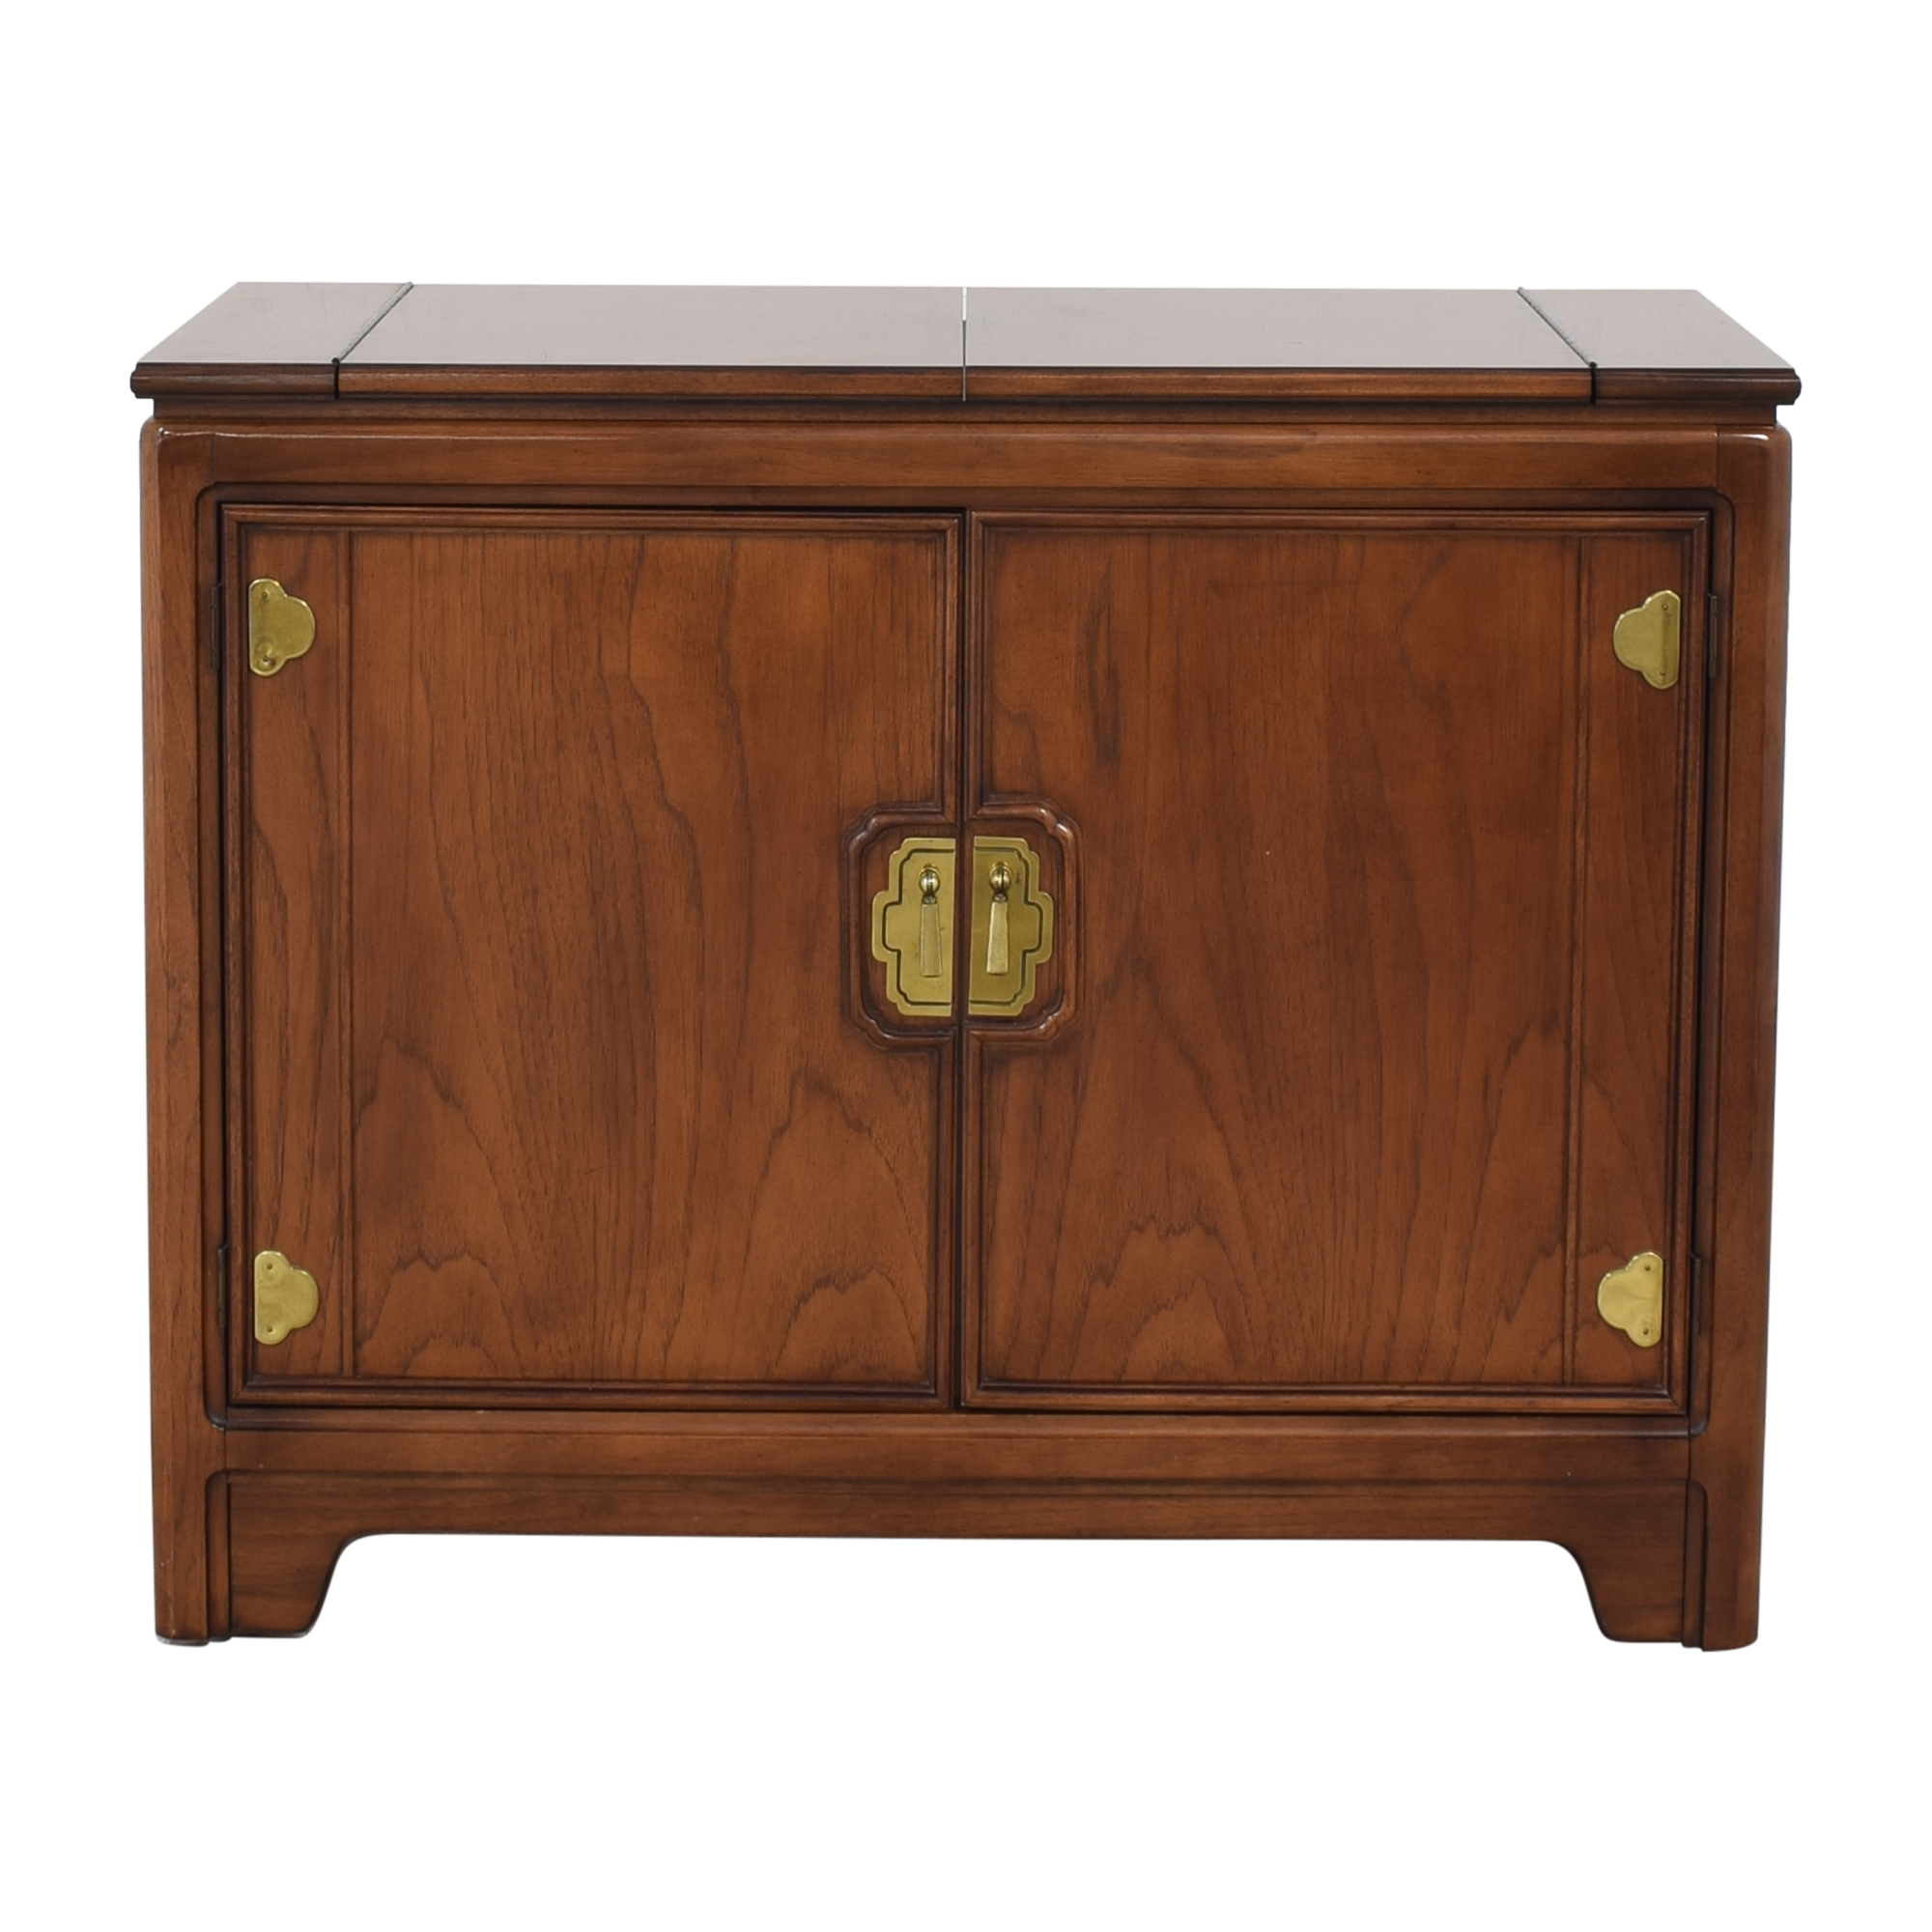 Thomasville Mystique Mobile Server / Cabinets & Sideboards